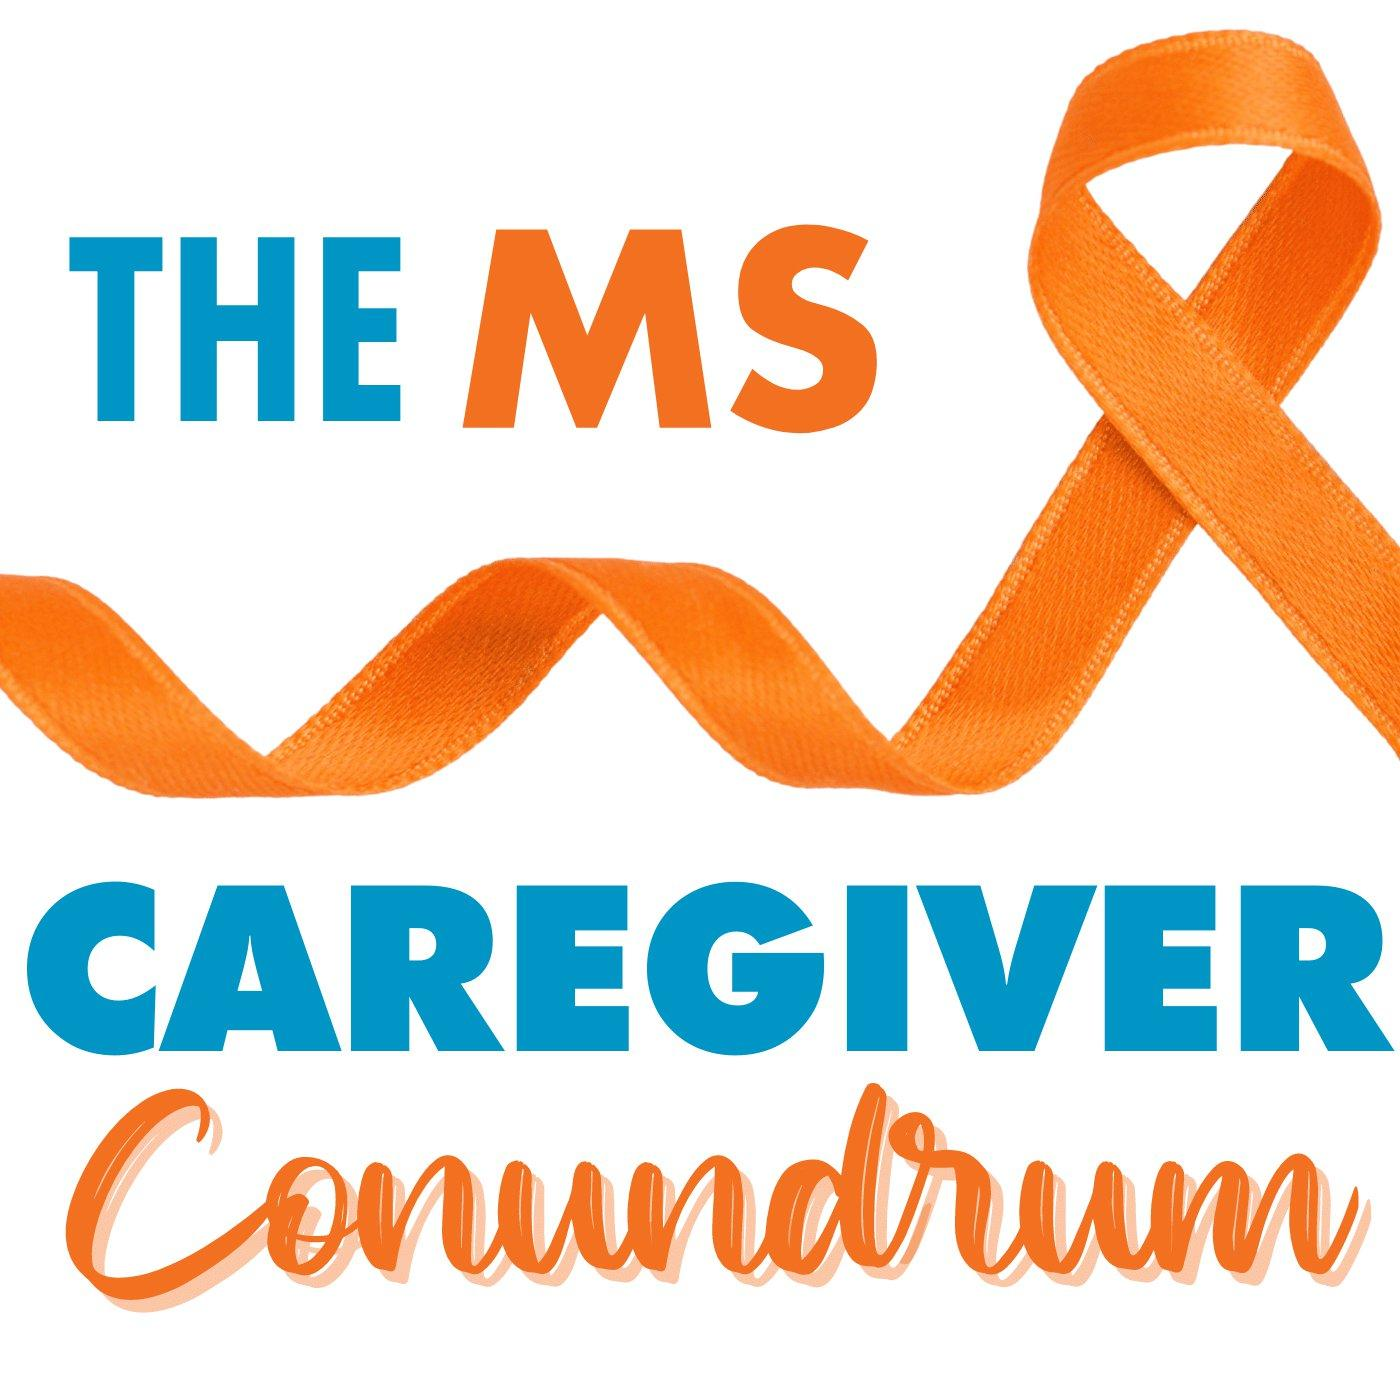 Episode 3: Caring for a Child with MS with Melissa Hadsell and Rebecca Darlow